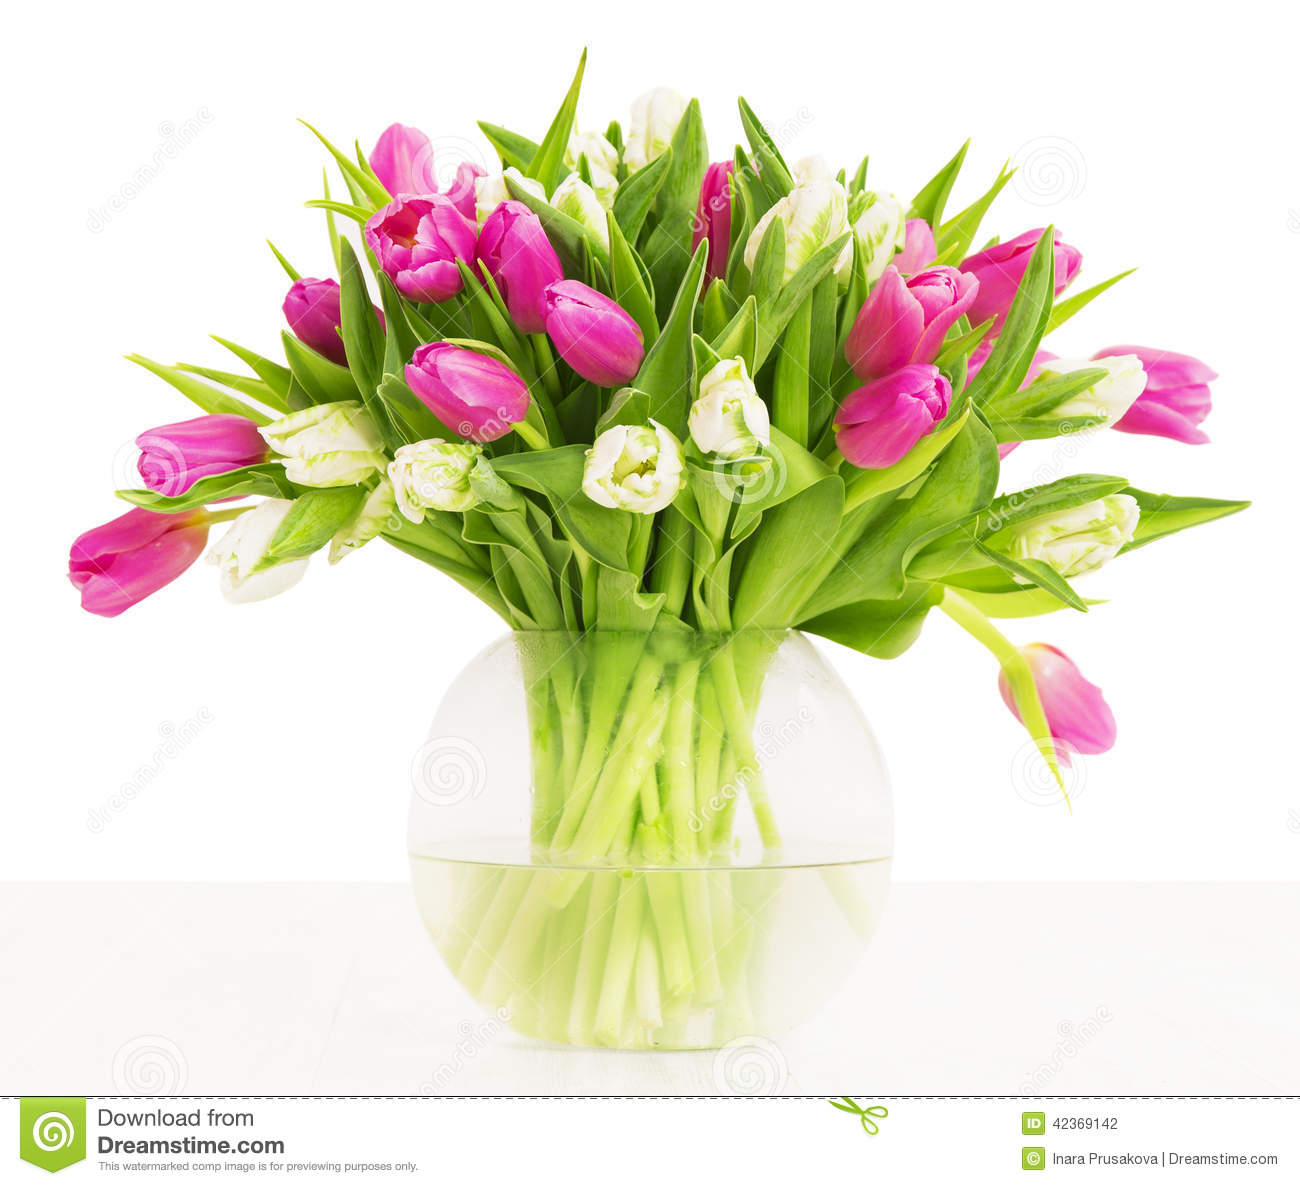 Flowers vase stock photos download 68973 images tulips flowers bouquet in vase white background tulips flowers bouquet in vase over white reviewsmspy